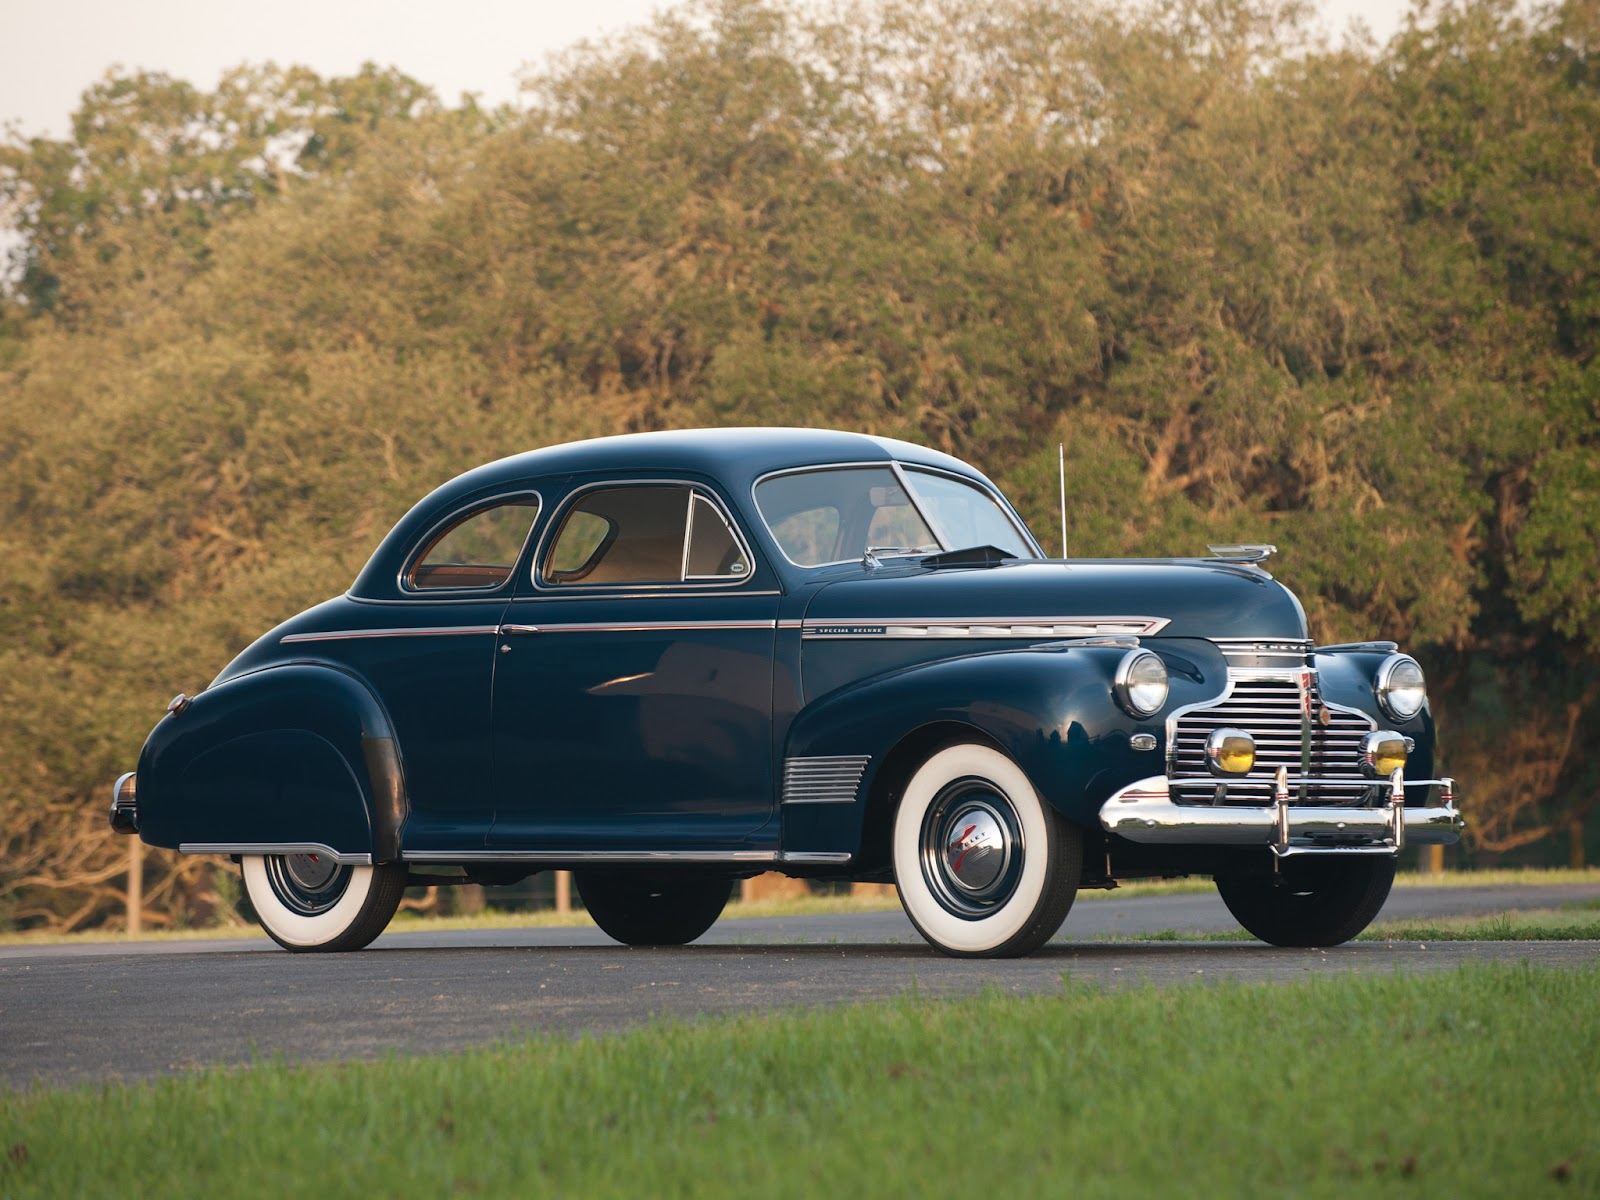 Retro Cars Chevrolet Special Deluxe Coupe 1941